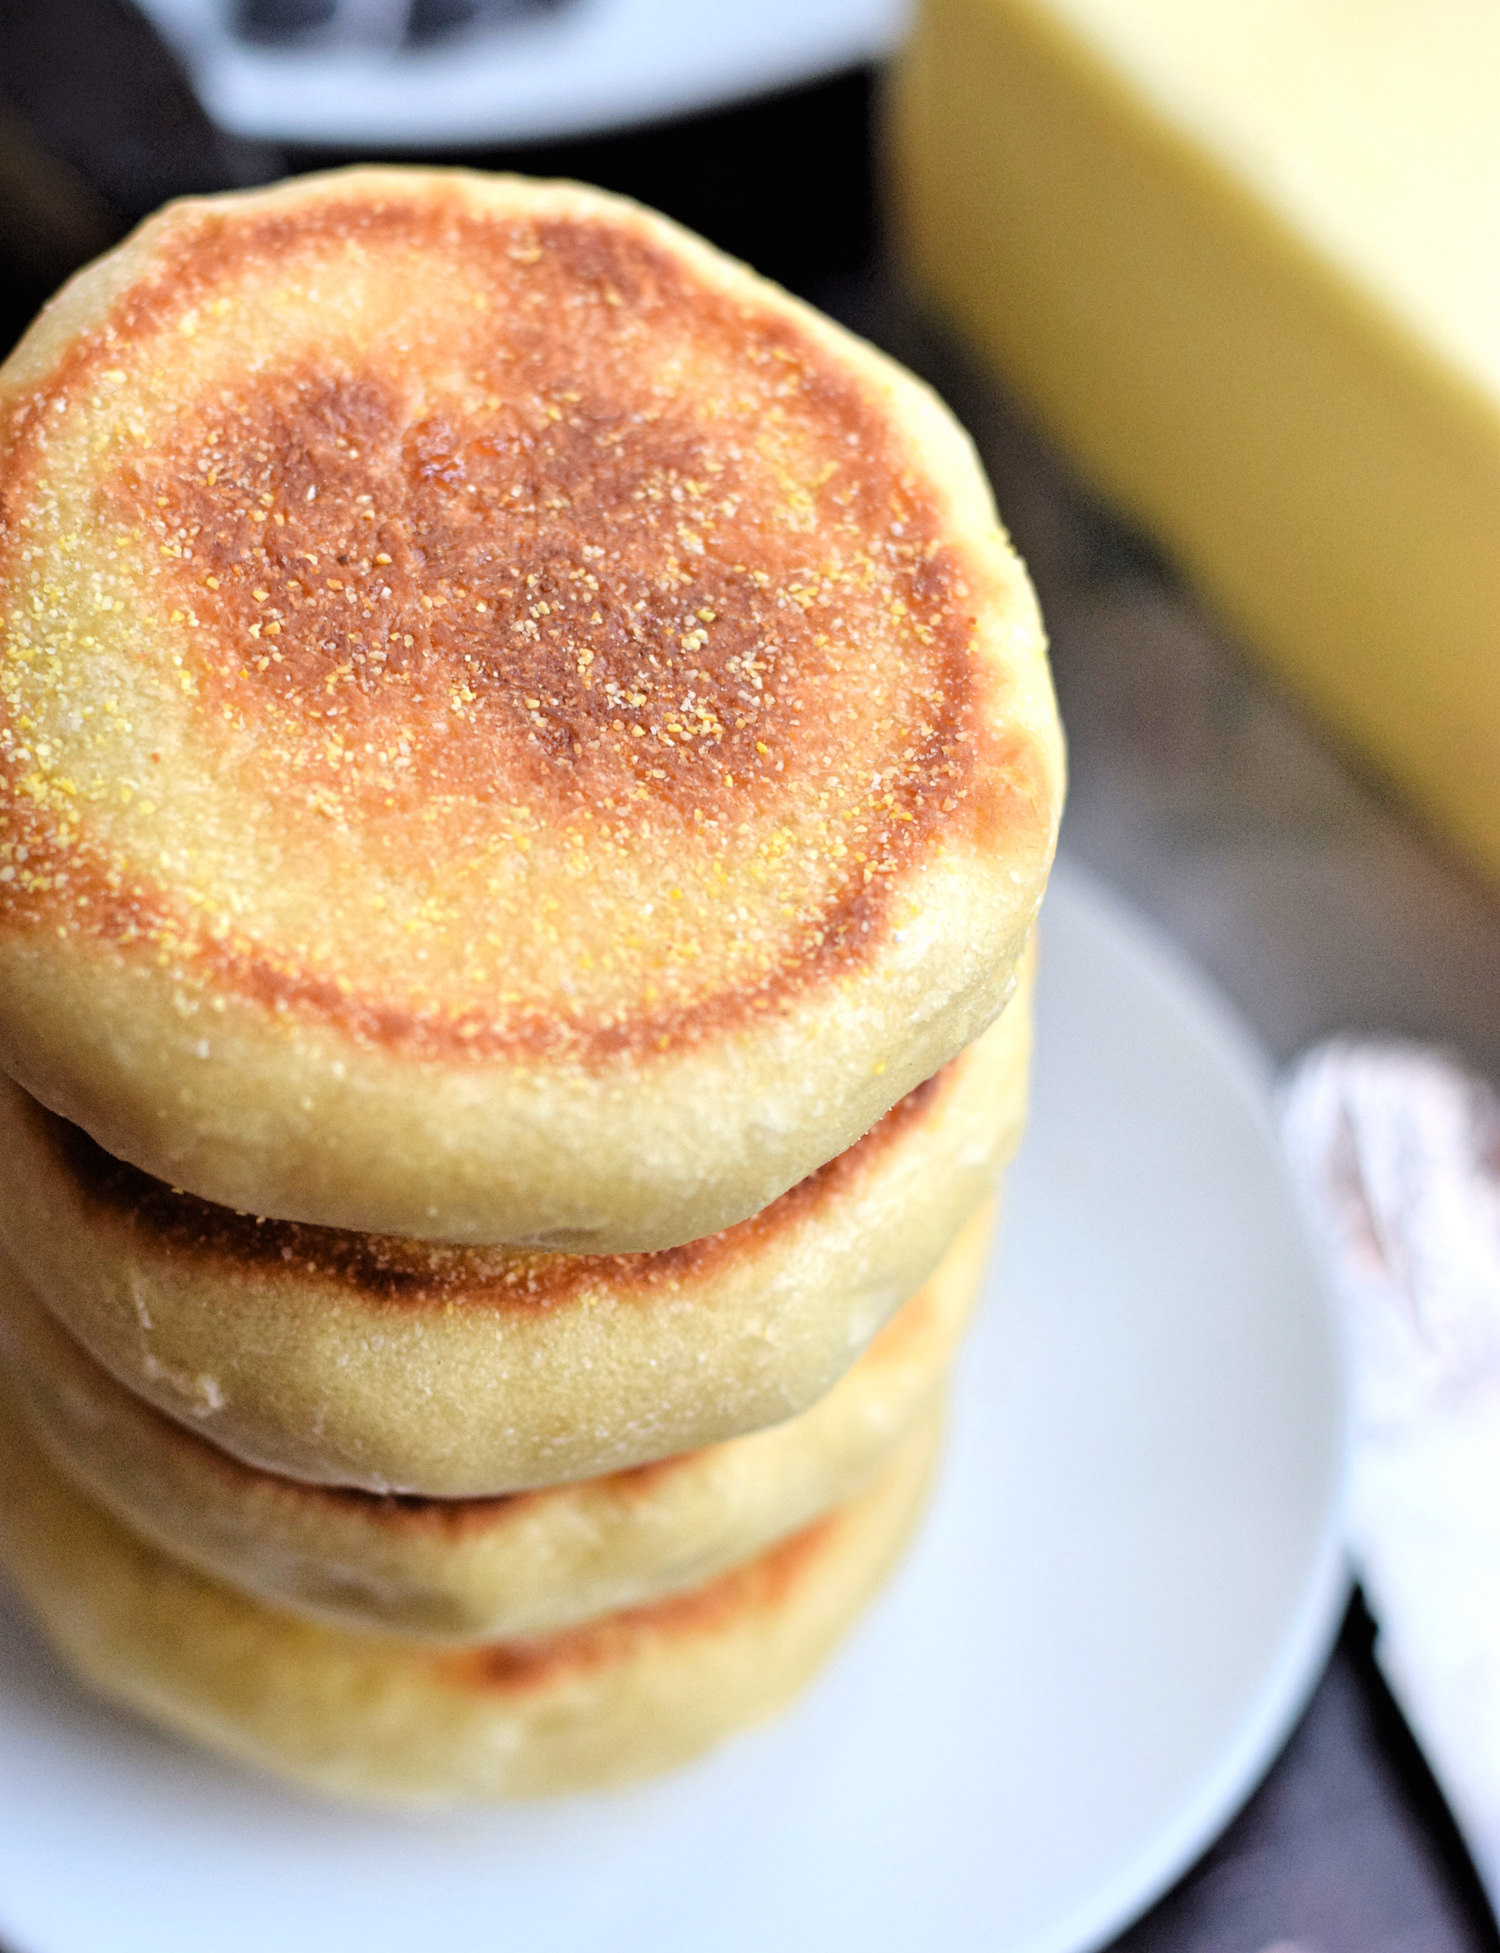 Quick and Soft English Muffins - soft, fluffy english muffins with only an hour or so of rising time. Better than any store-bought versions! | trufflesandtrends.com